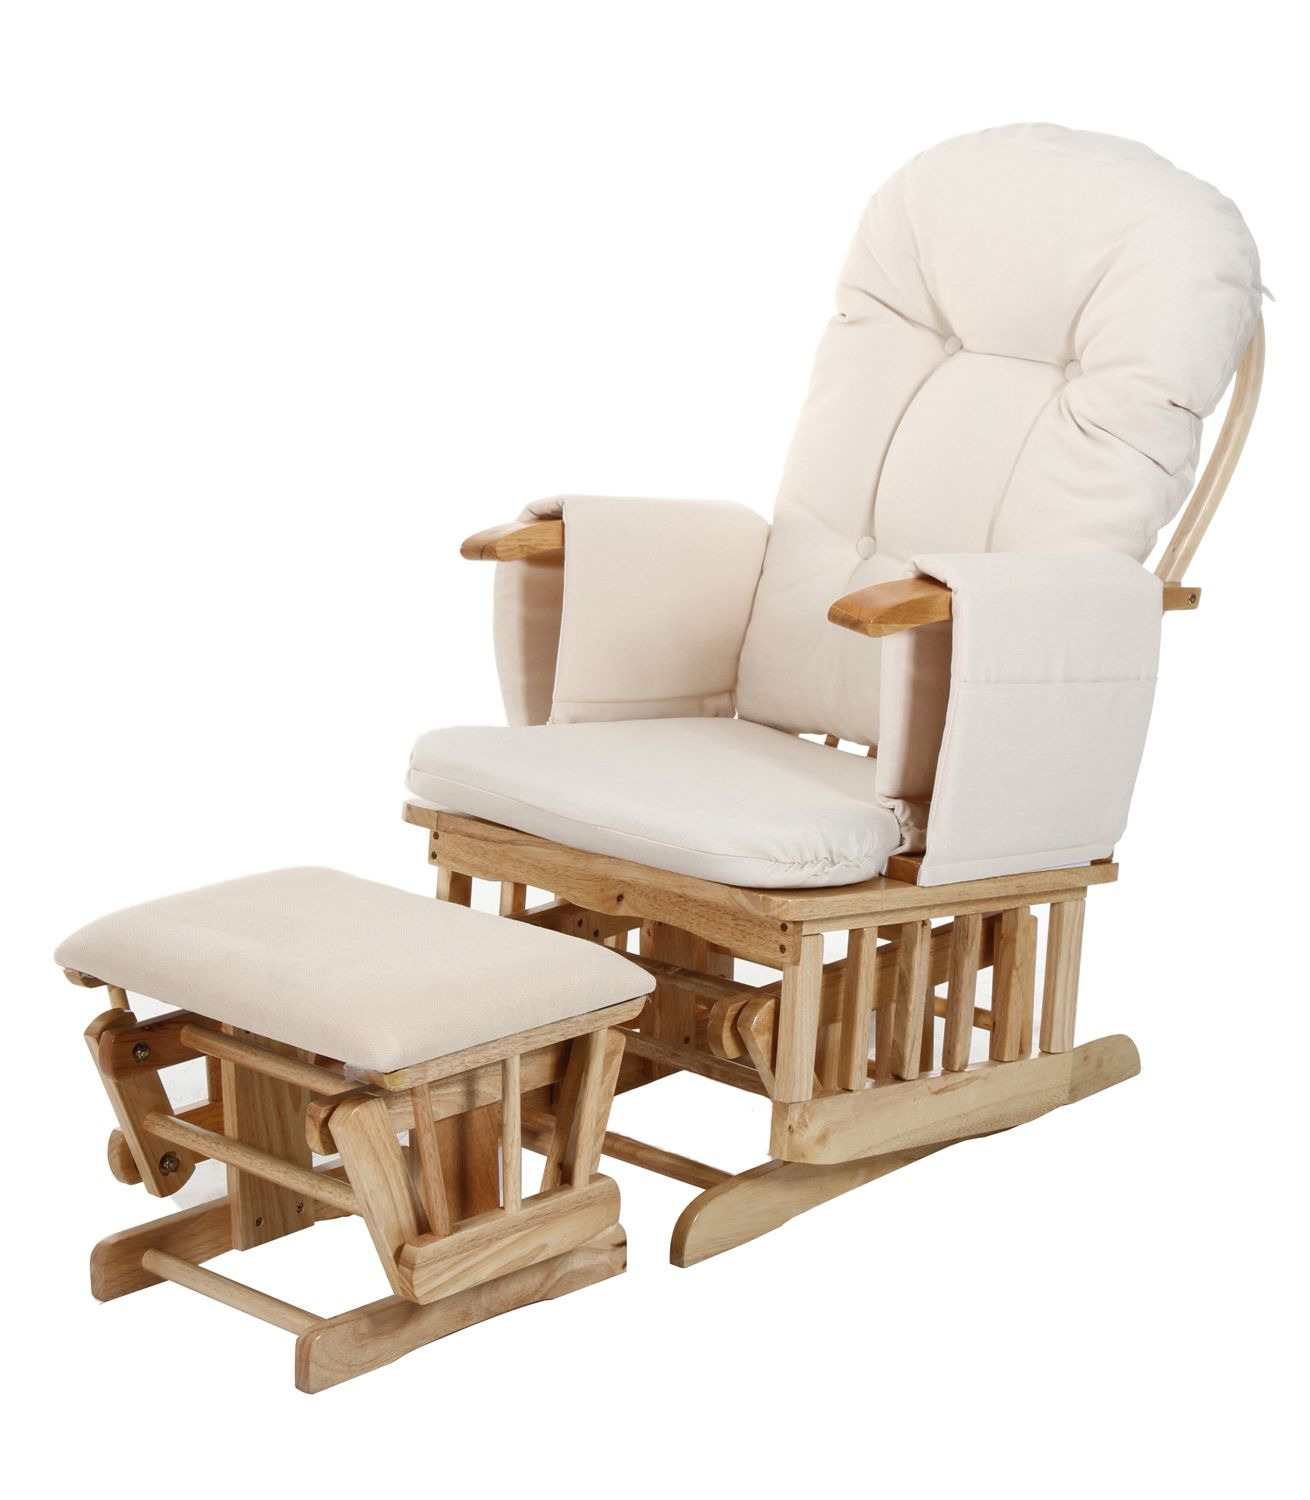 buy your baby weavers recline glider u0026 stool from kiddicare nursing chairs online baby shop